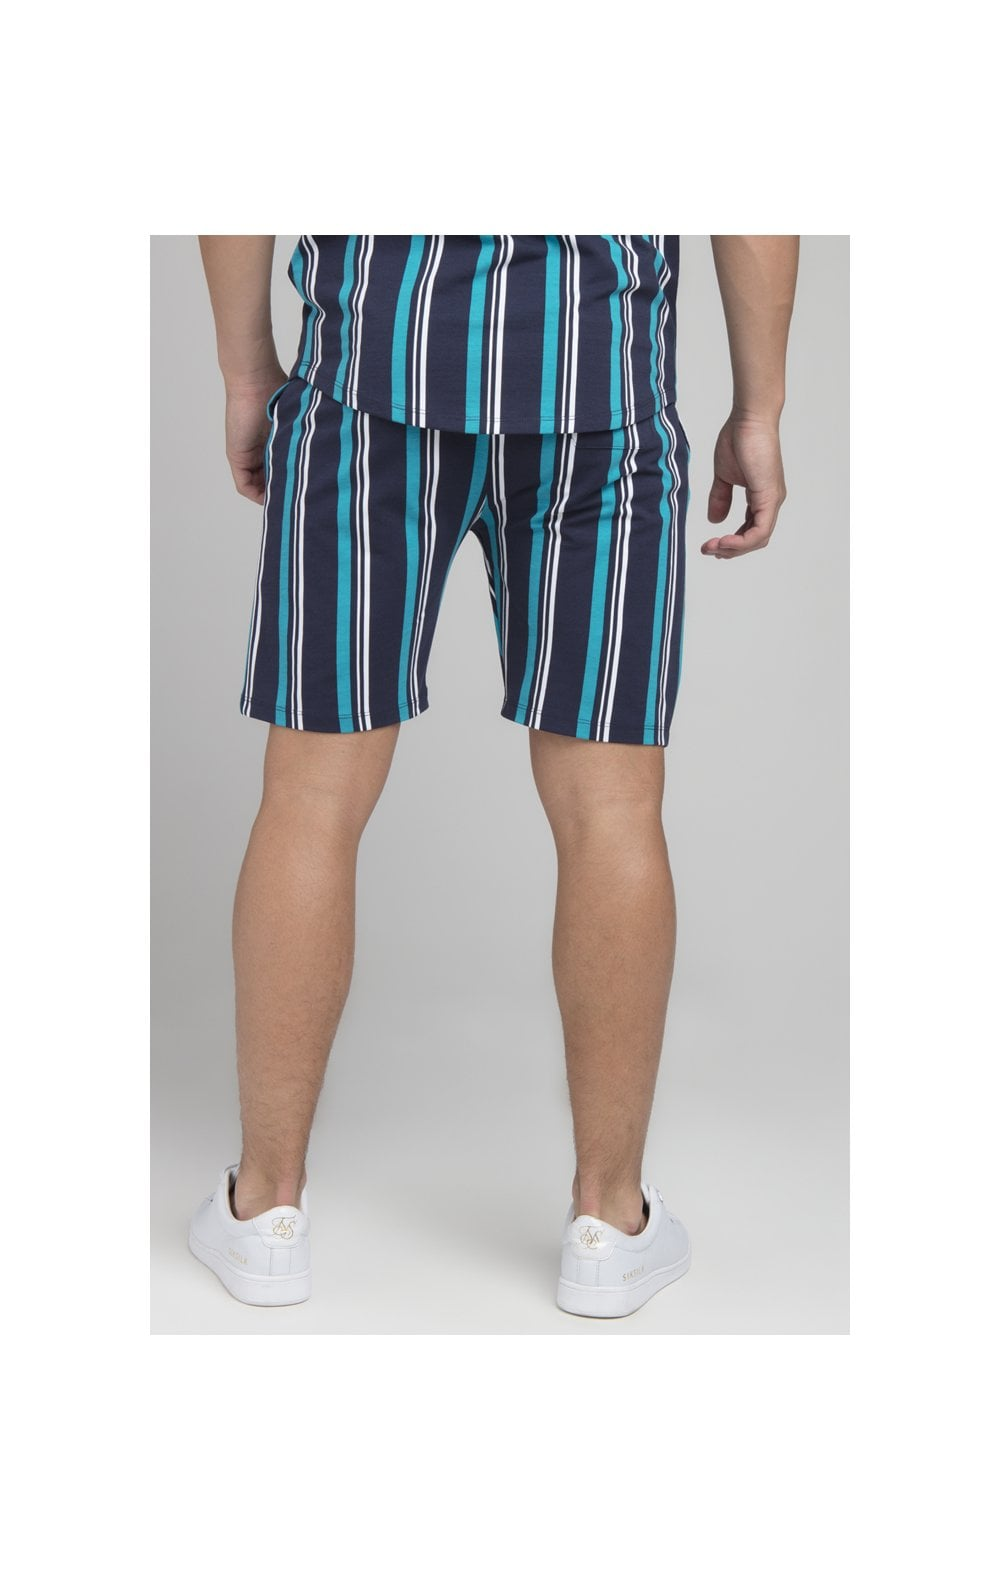 Load image into Gallery viewer, Illusive London Stripe Shorts - Navy & Teal (2)